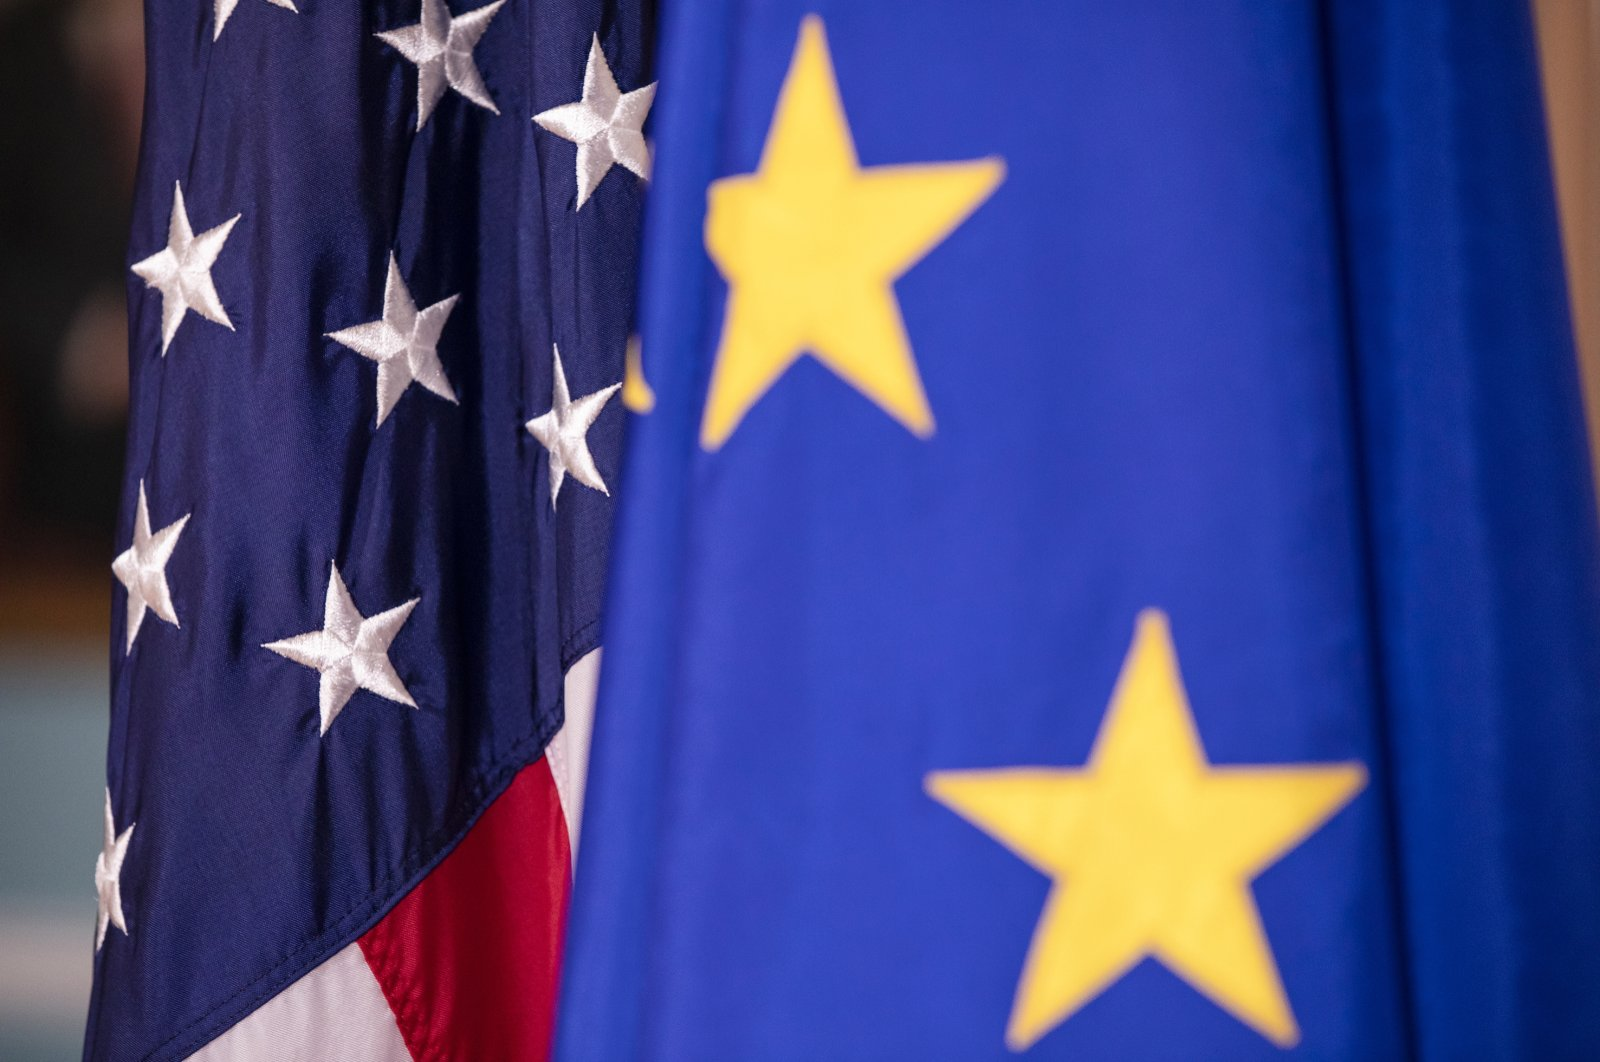 The U.S. and EU flags on display before a meeting between the U.S. and EU delegations, Washington, D.C., the U.S., Feb. 7, 2020. (Photo by Getty Images)